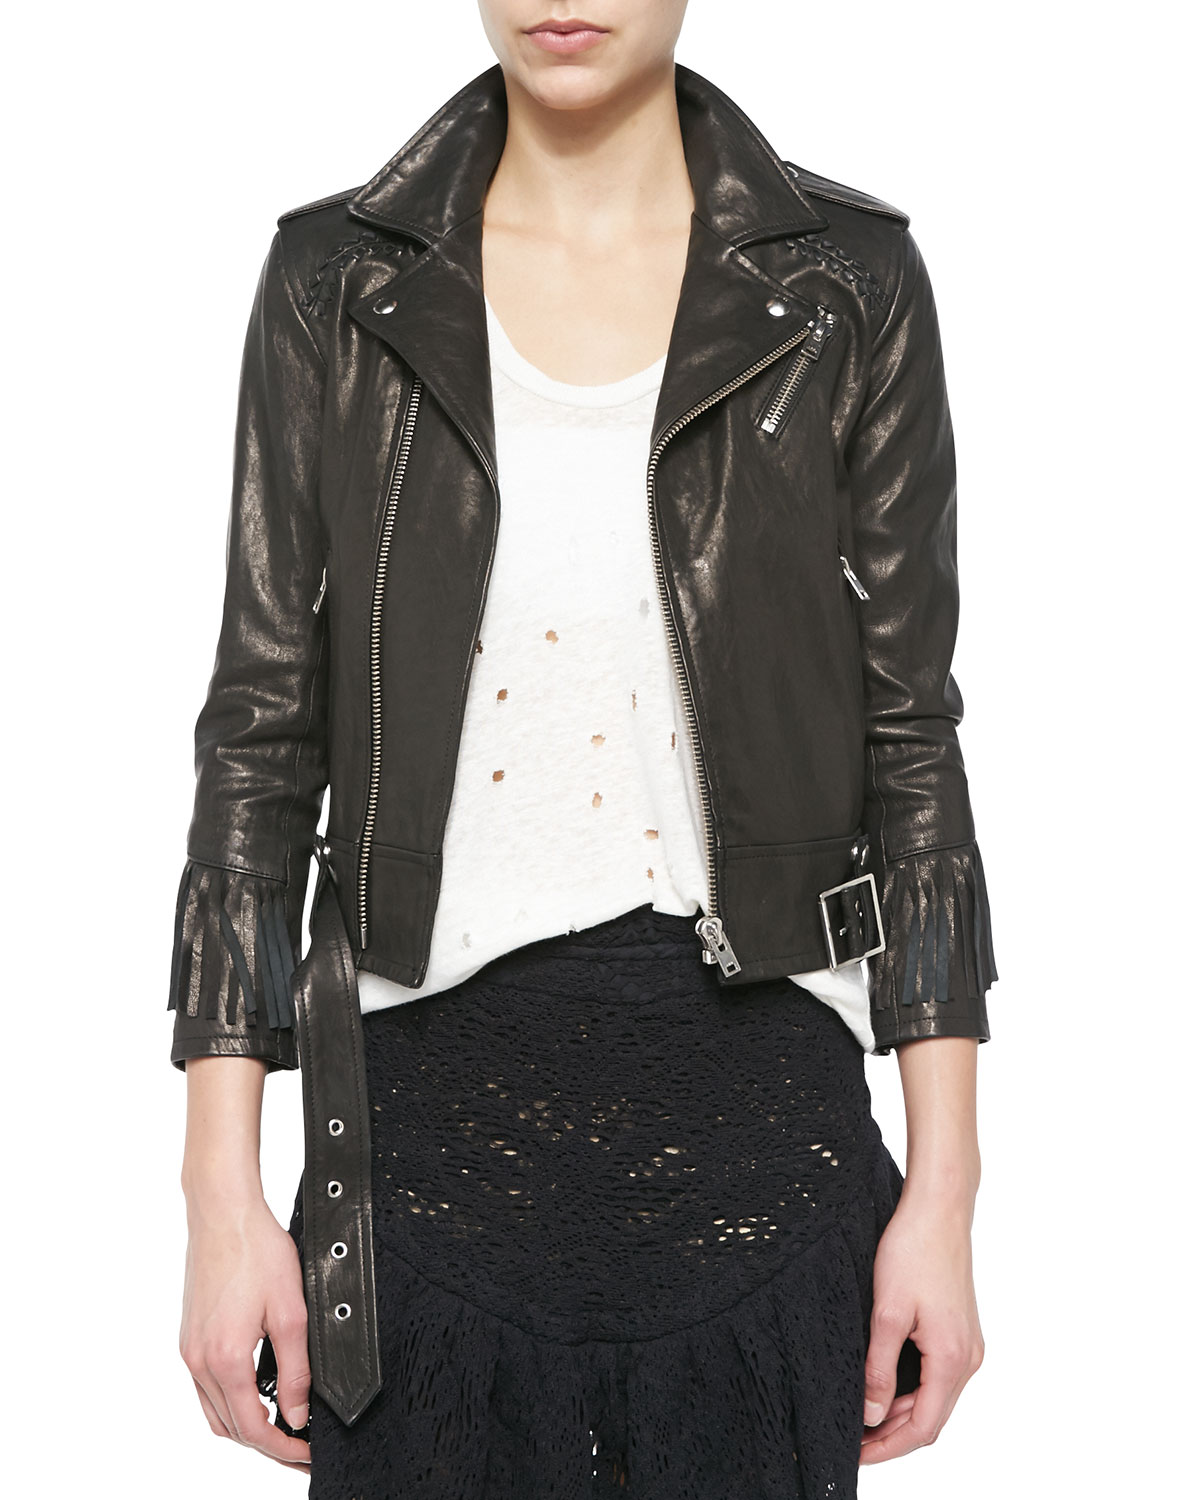 Zerignola Lamb Leather Jacket, Black